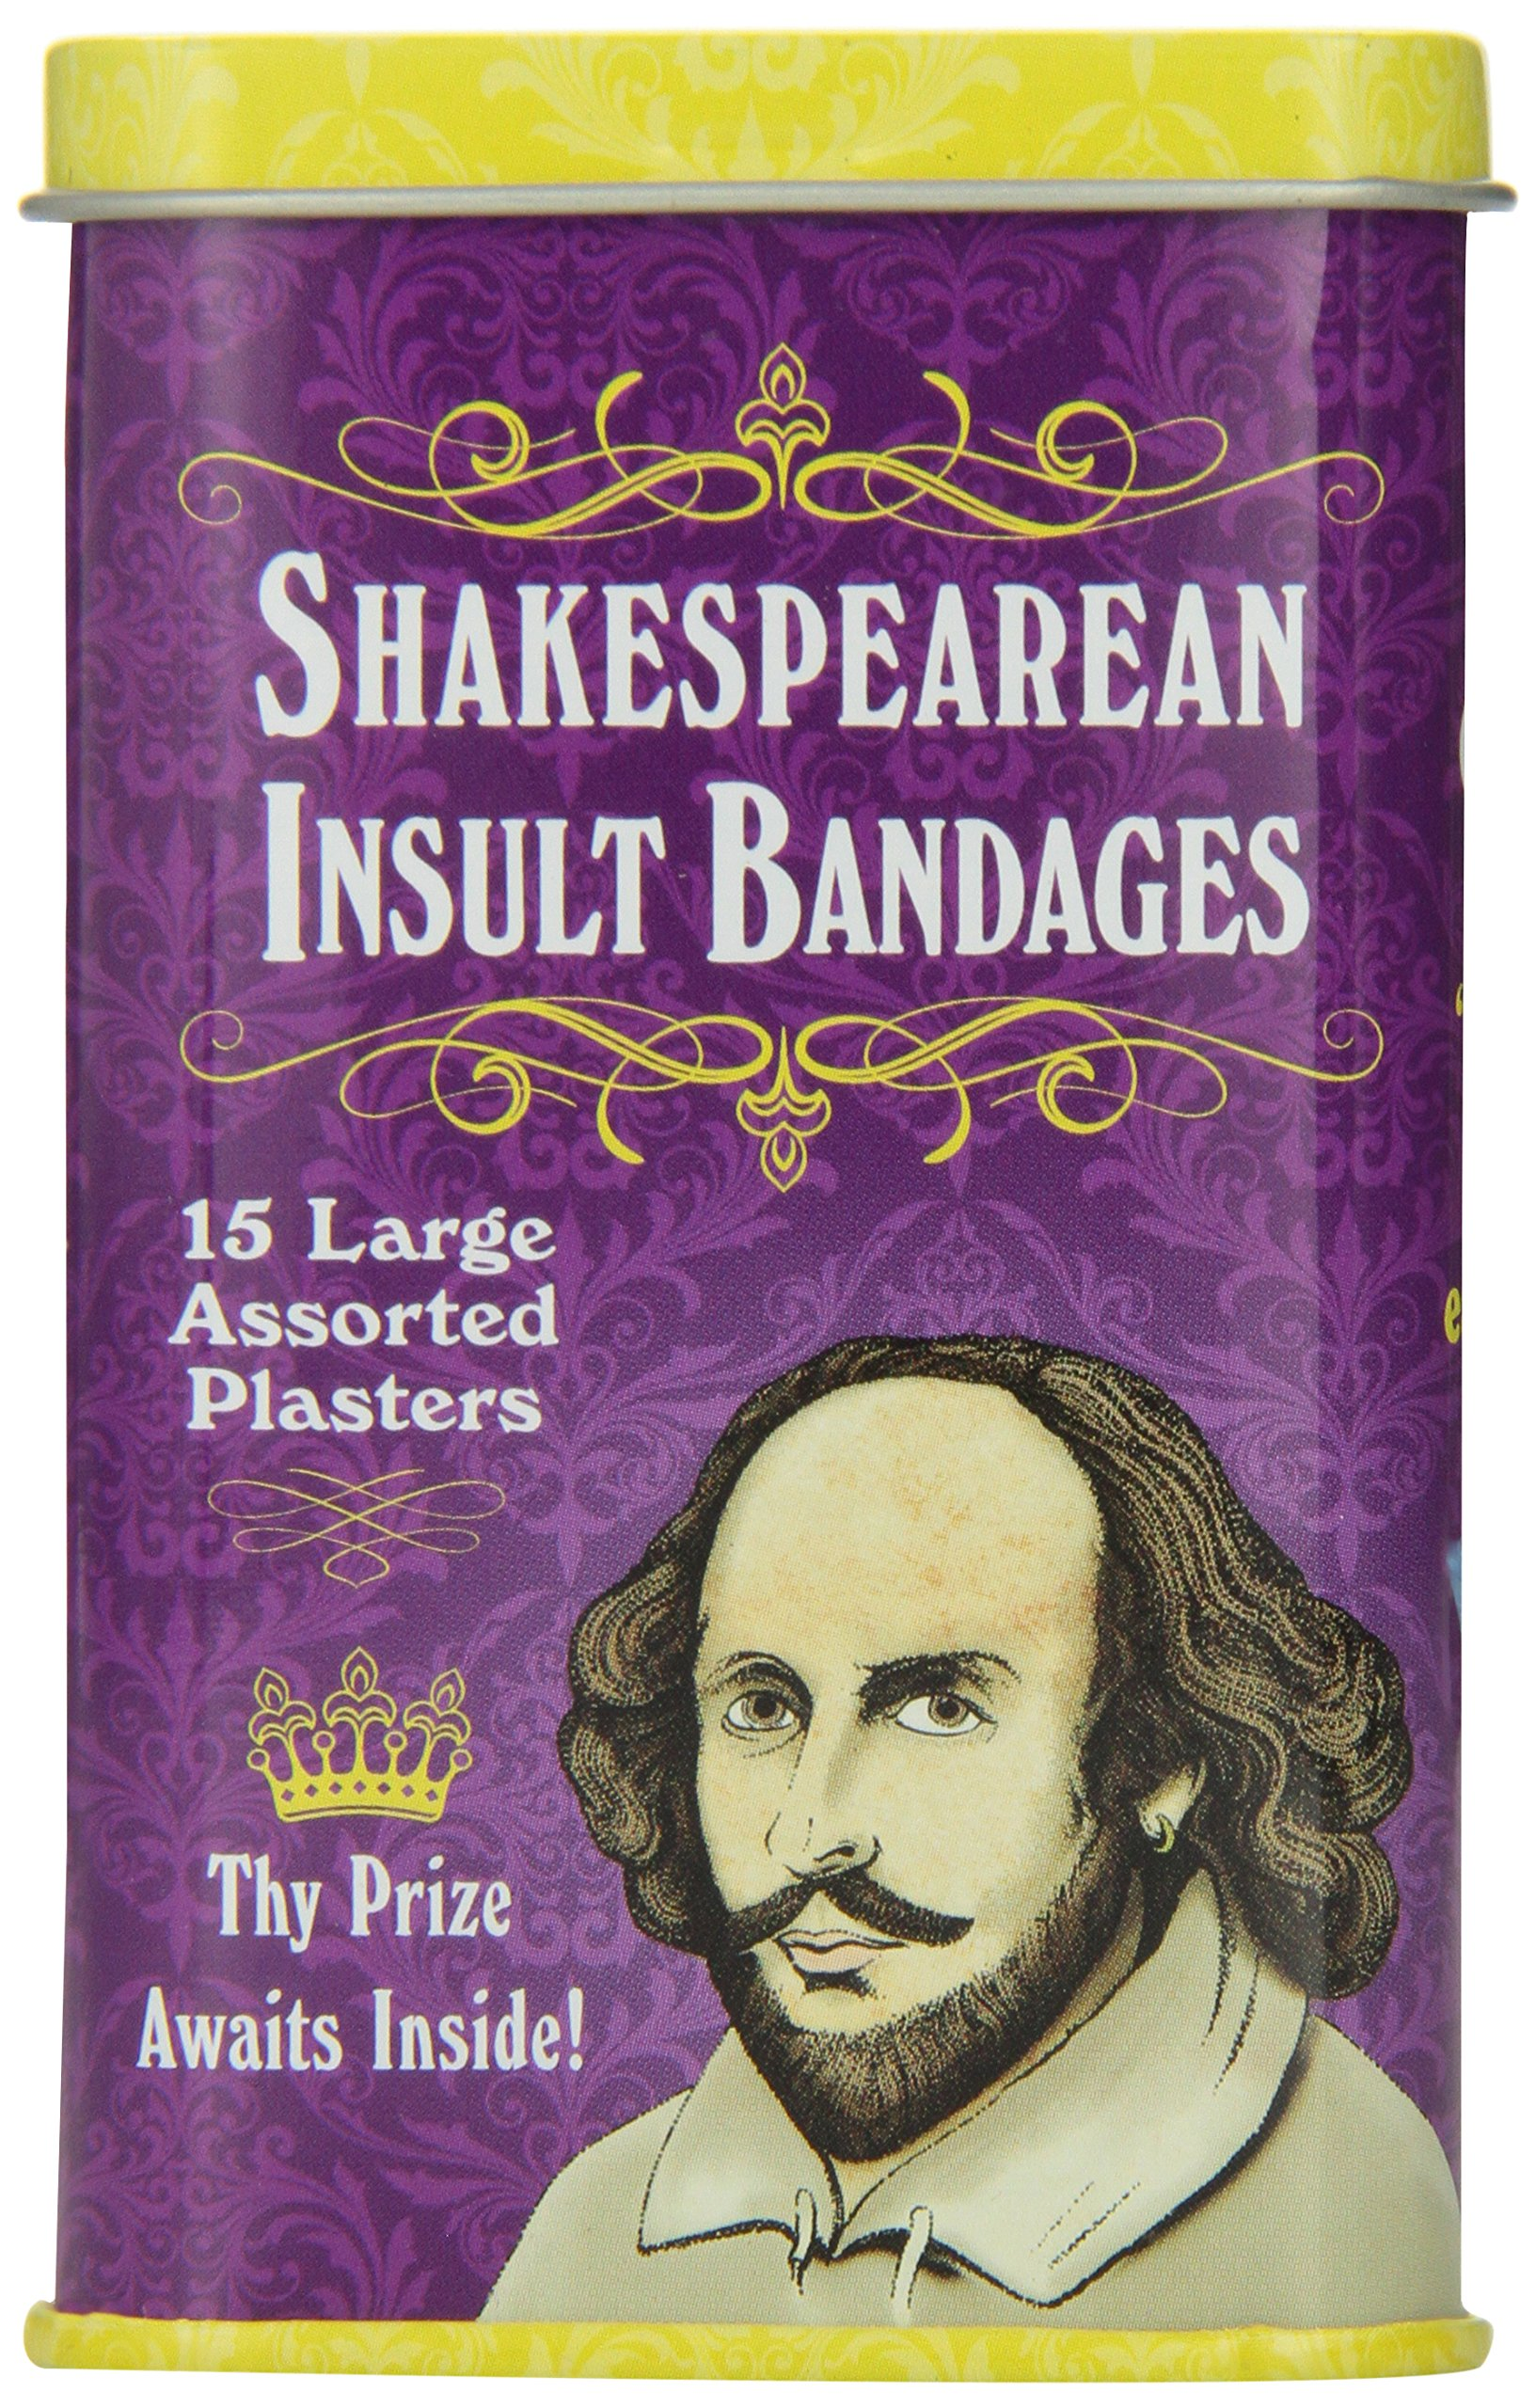 Buy Shakespearean Insult Bandages Now!